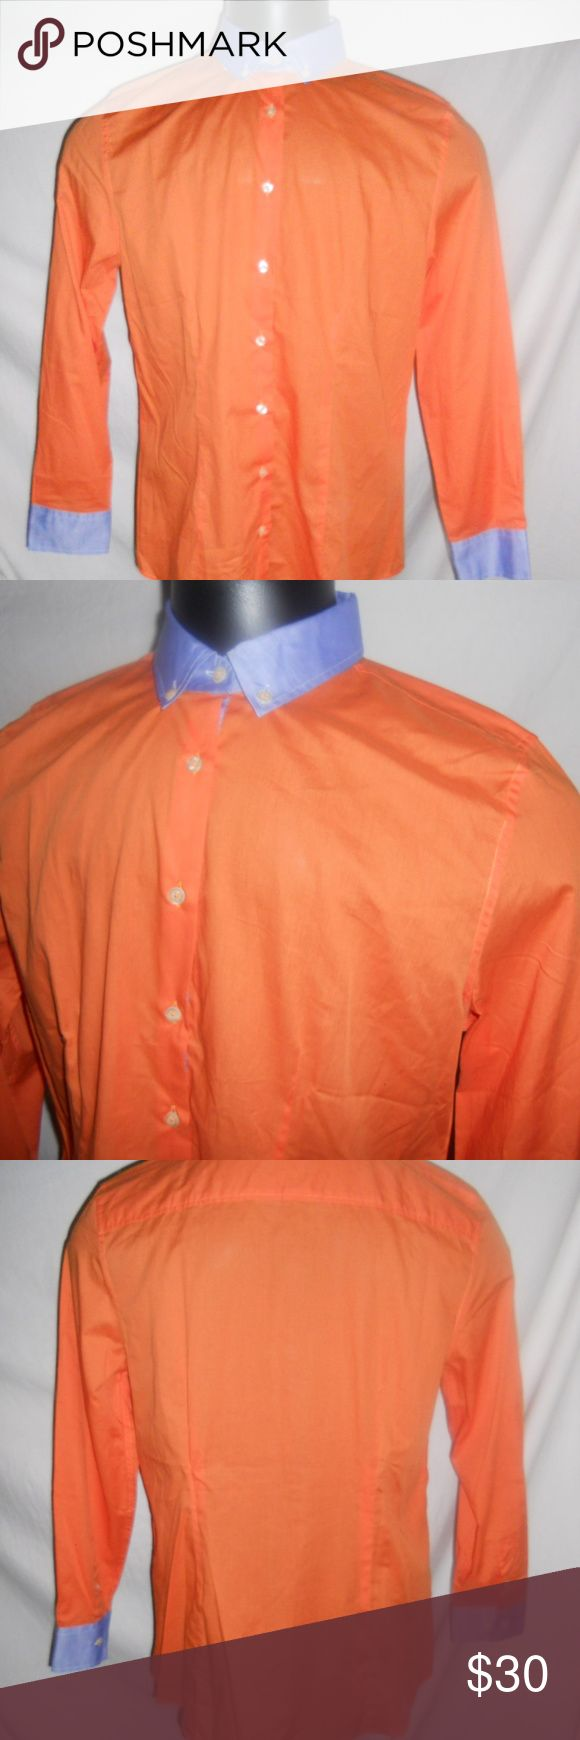 """J Peterman Ladies Shirt Top Size 12 Orange Blue J Peterman Shirt Top Size 12 Orange Blue Button Down Cotton. Excellent condition, never worn. Here are some additional measurements.  Chest/Bust - 40"""" Length - 28"""" Arm Length - 23"""" J. Peterman Tops Button Down Shirts"""